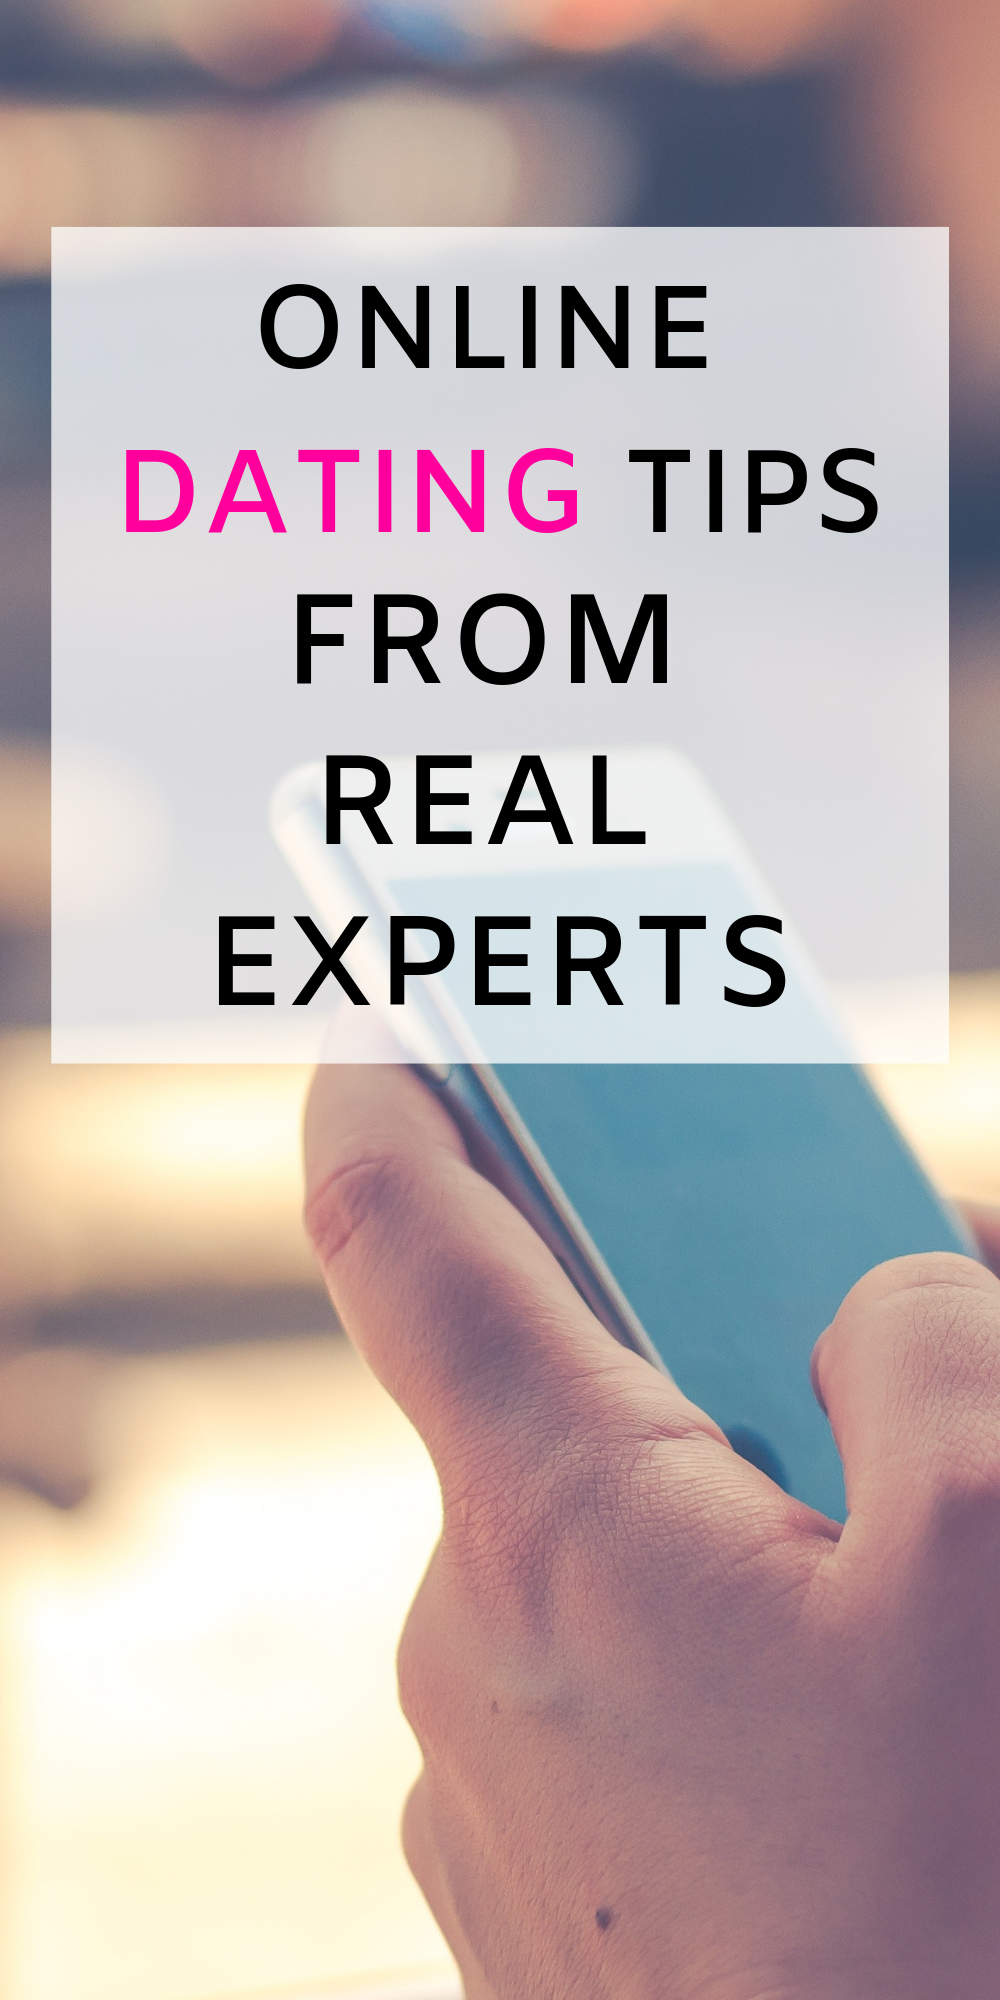 Internet dating succes tips